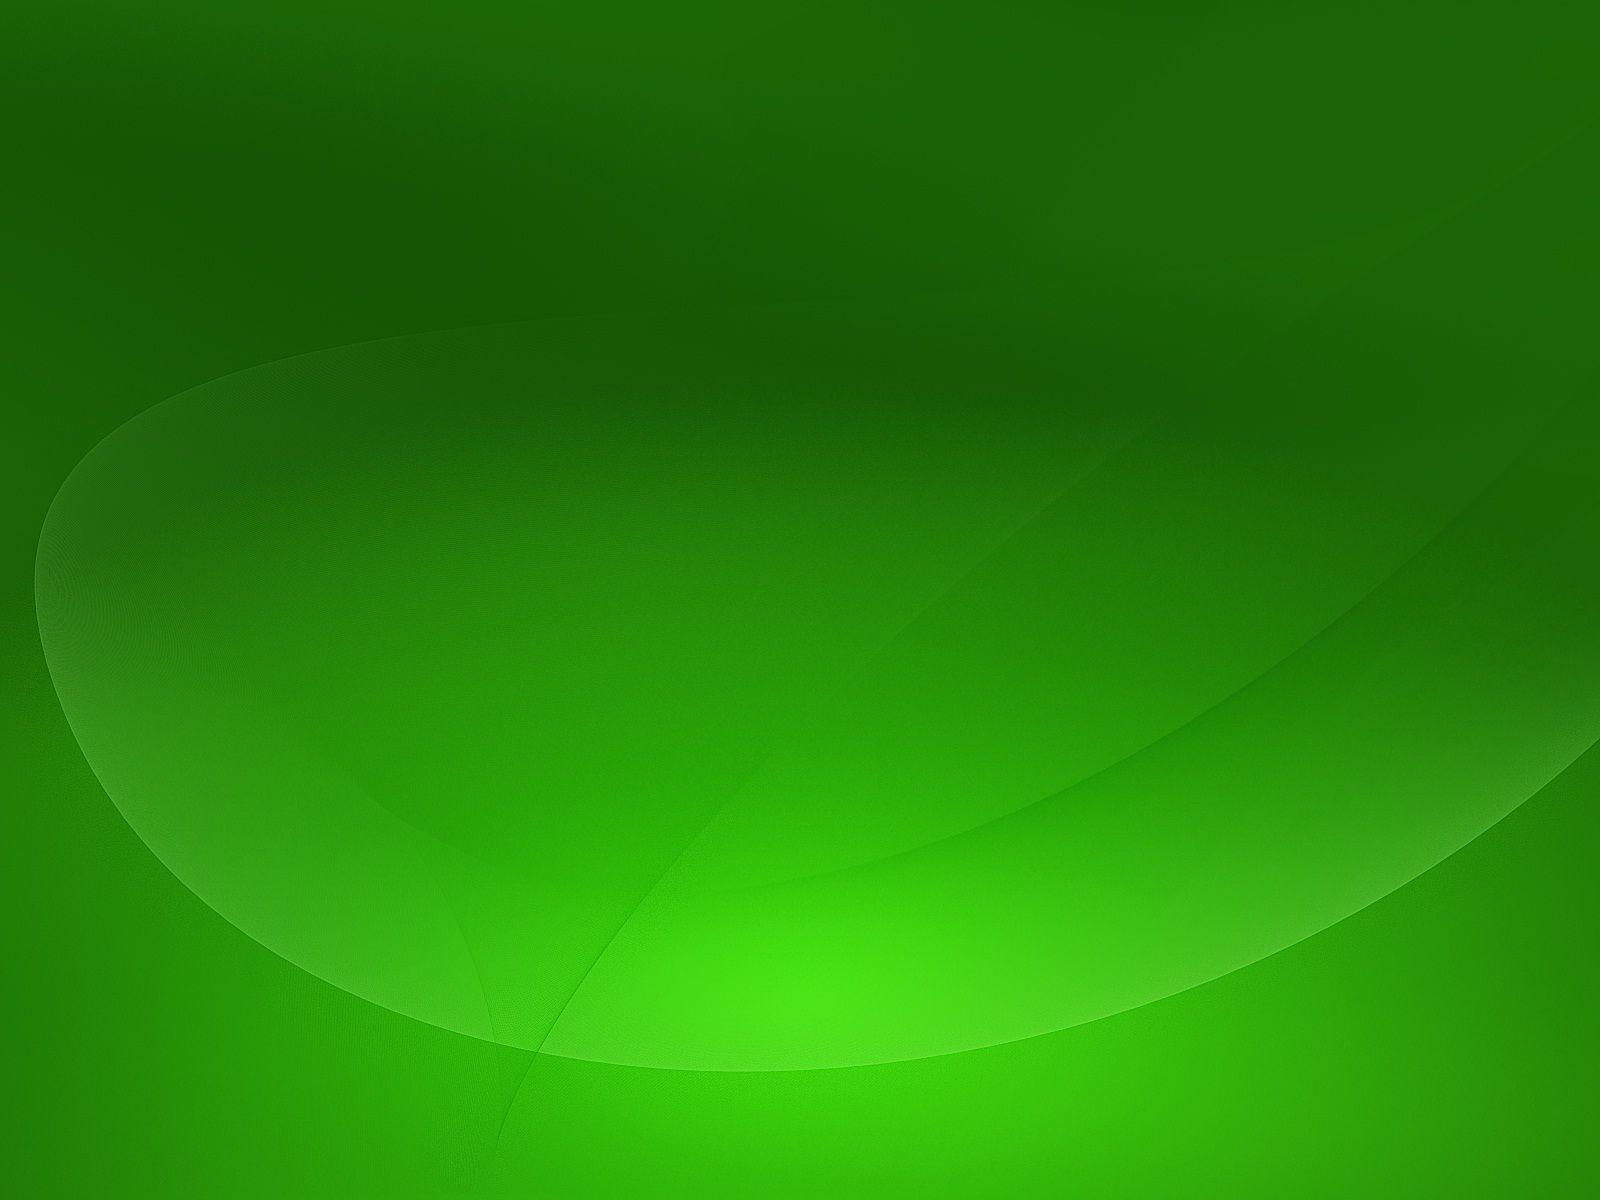 green background hd 3d - photo #3